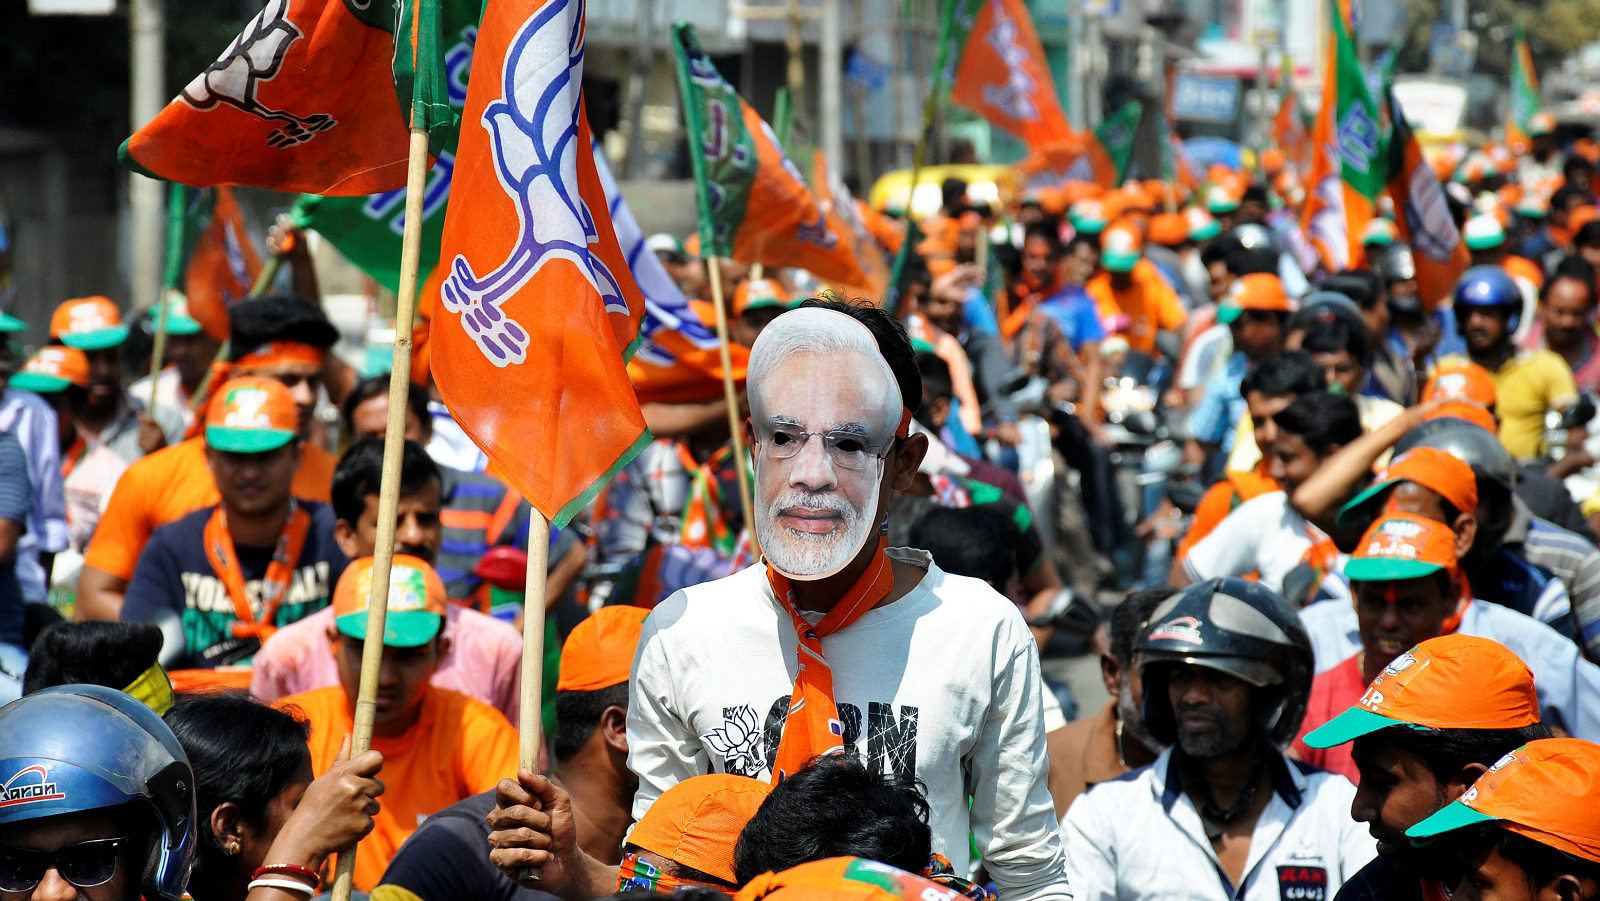 Separatist movements sprouting: India losing its grip?